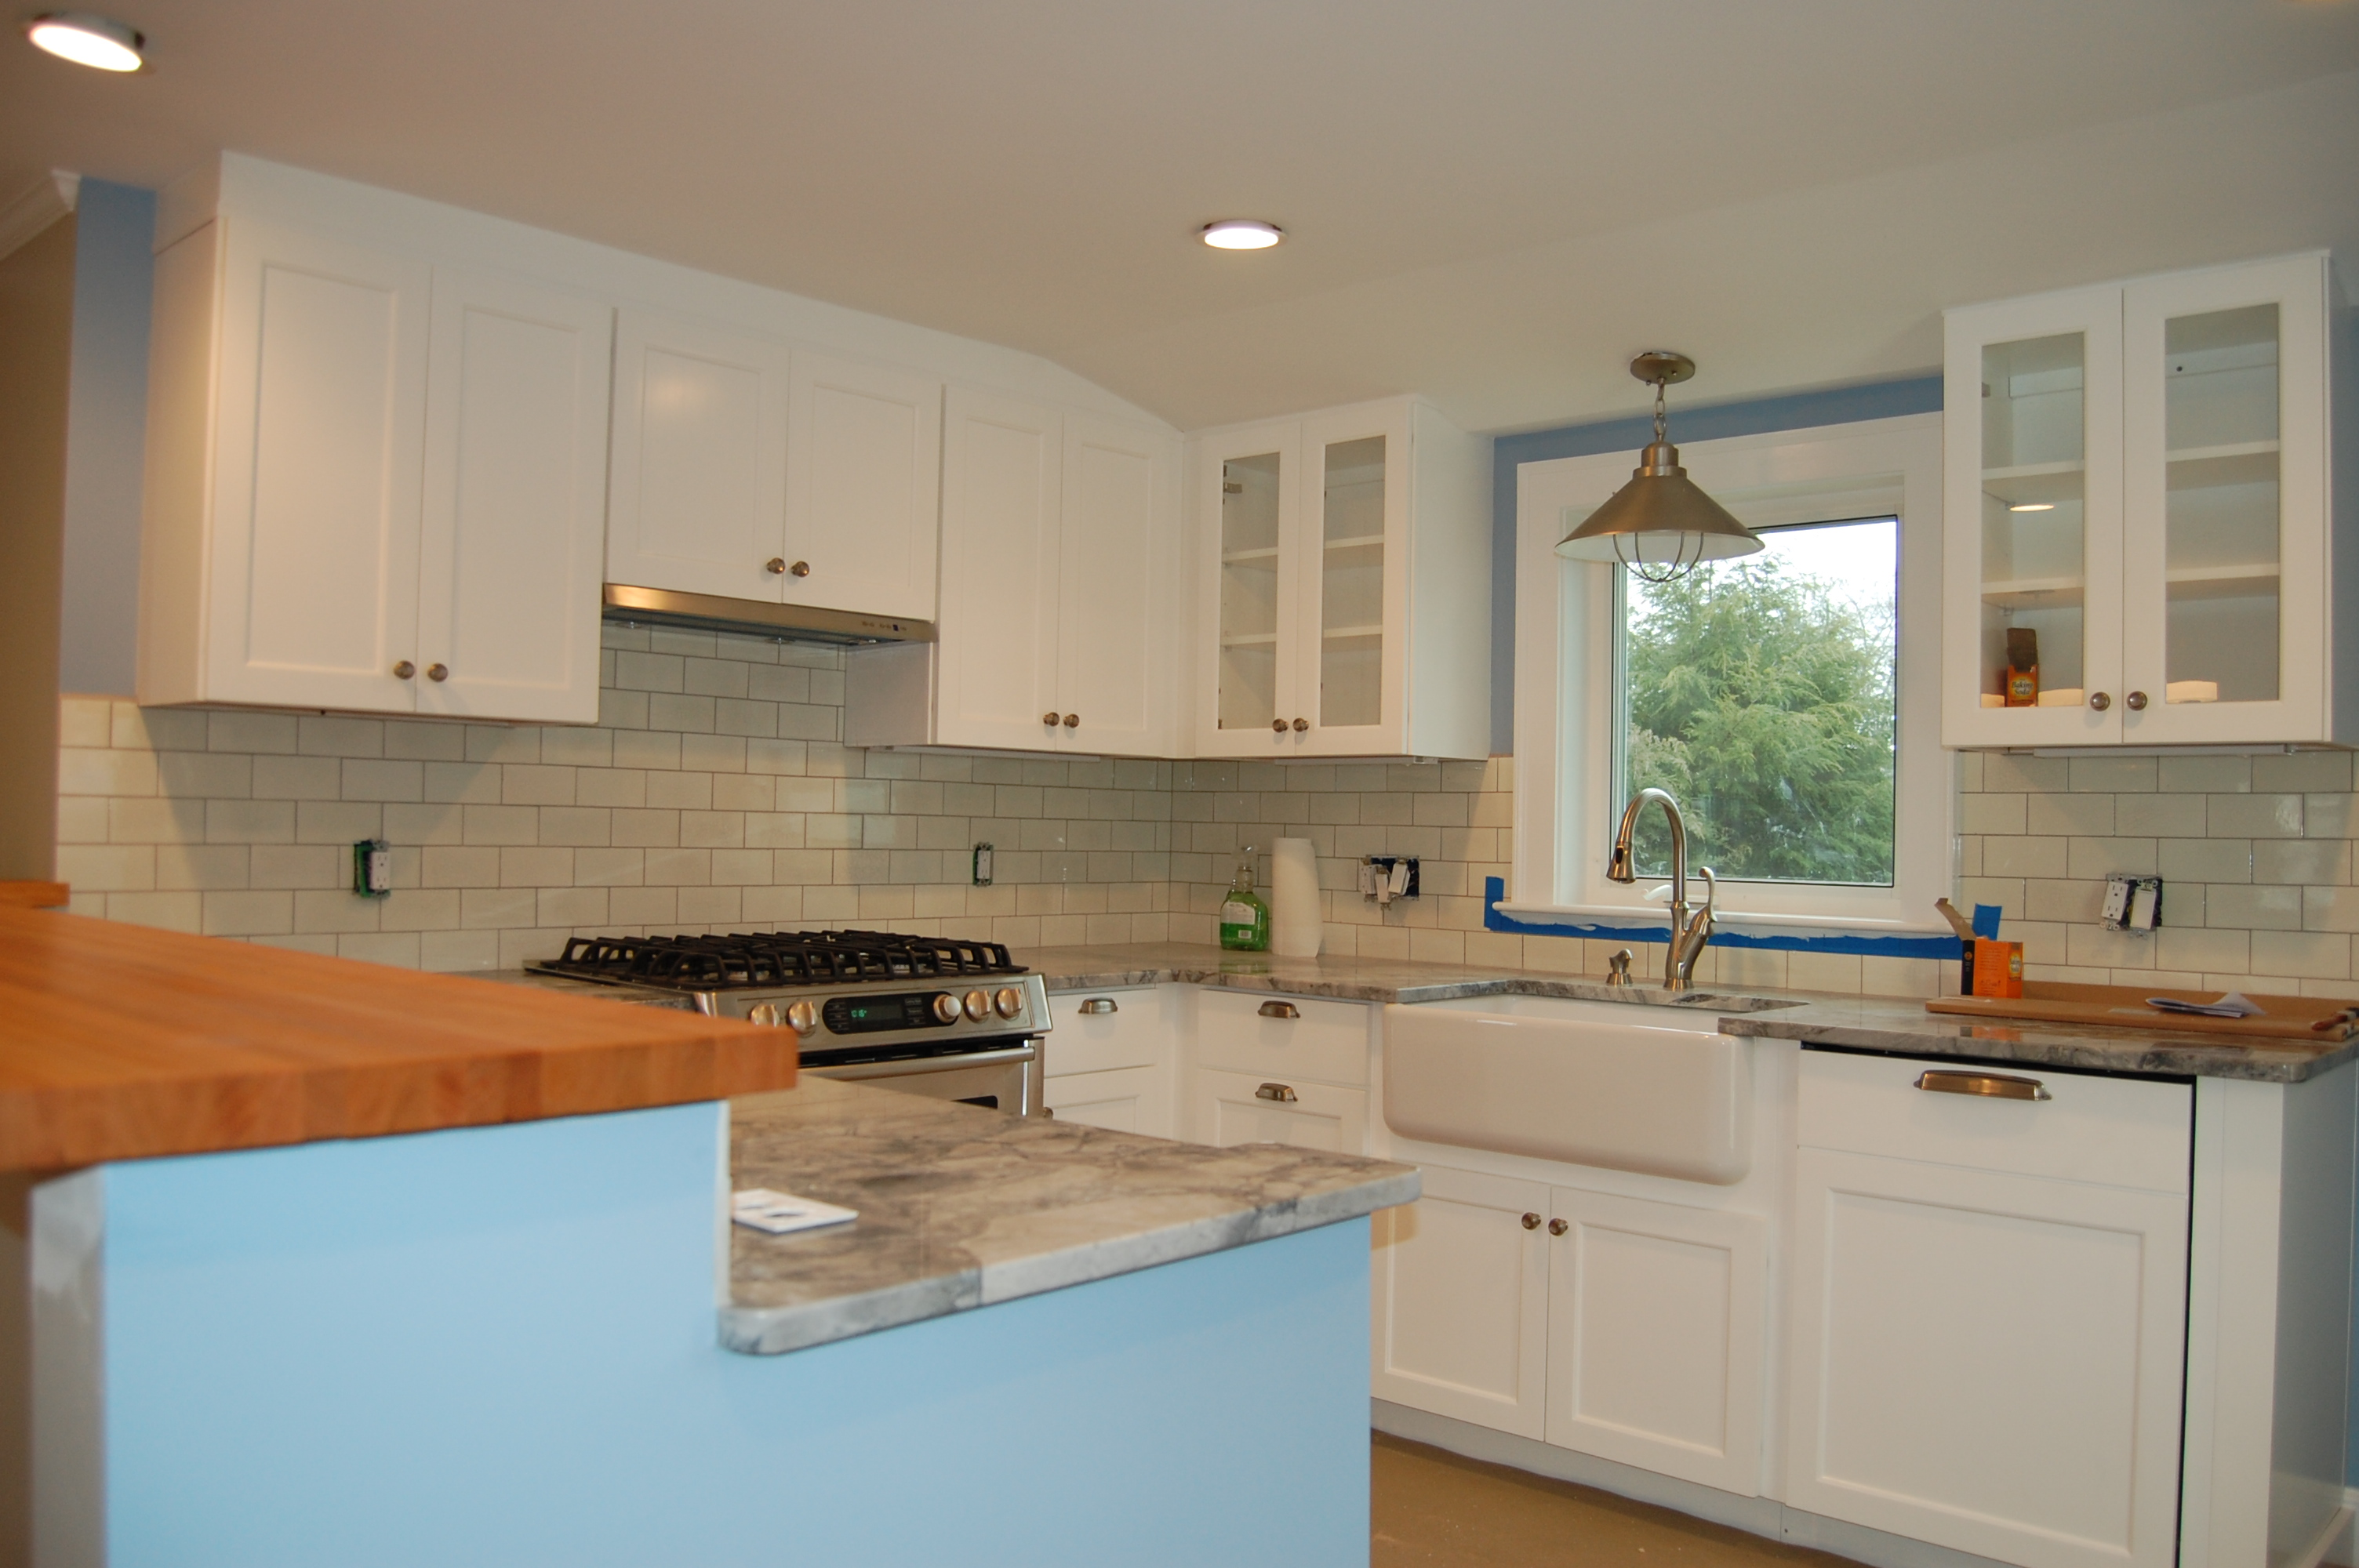 Bgb Projects Kitchen Renovation Completed On 1940 S Cape Style House In Watertown Phase Ii